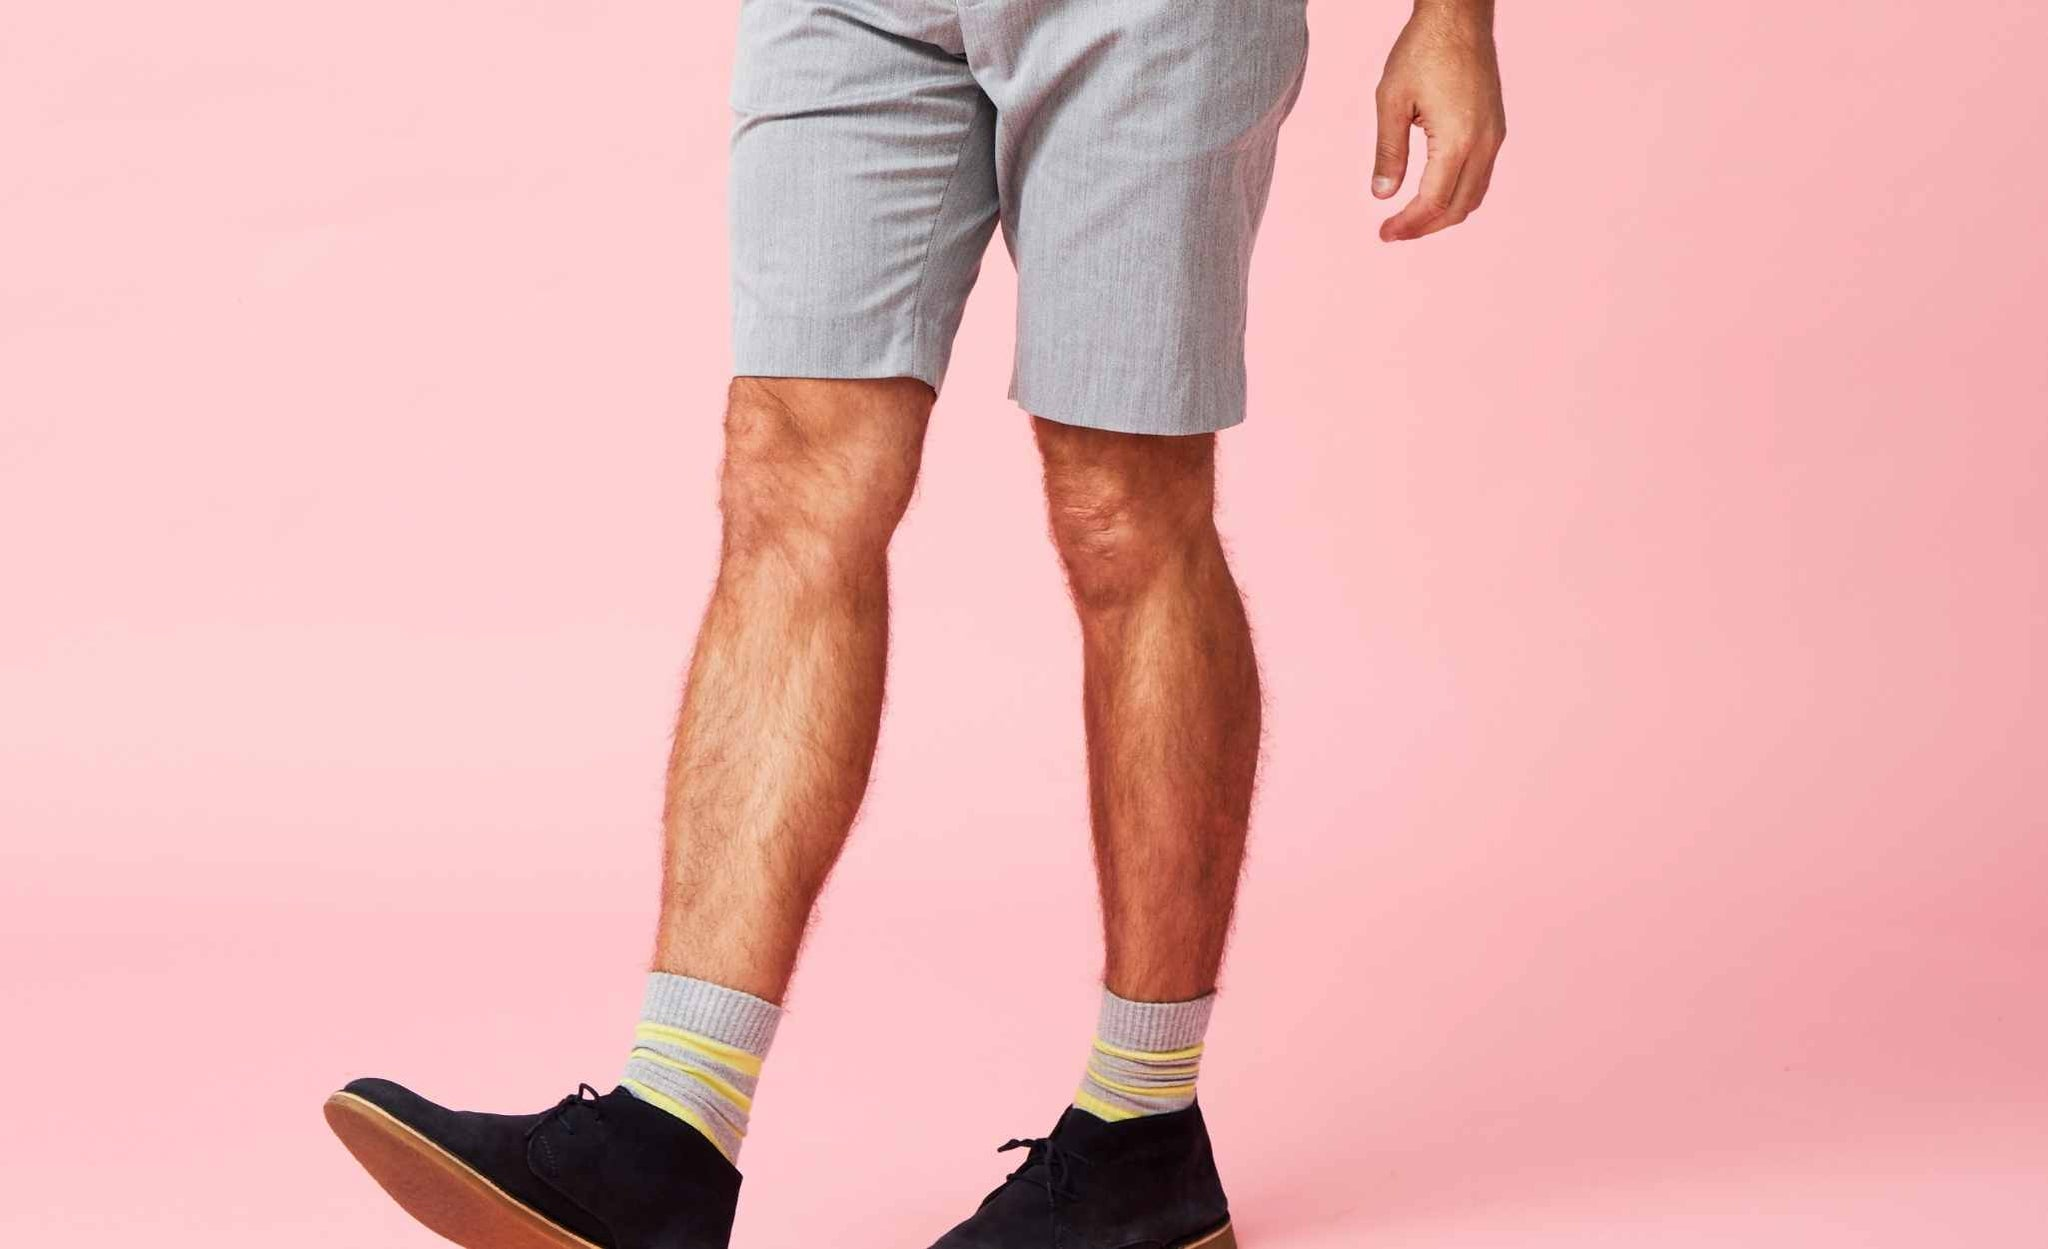 What type of socks You Should wear with shorts?